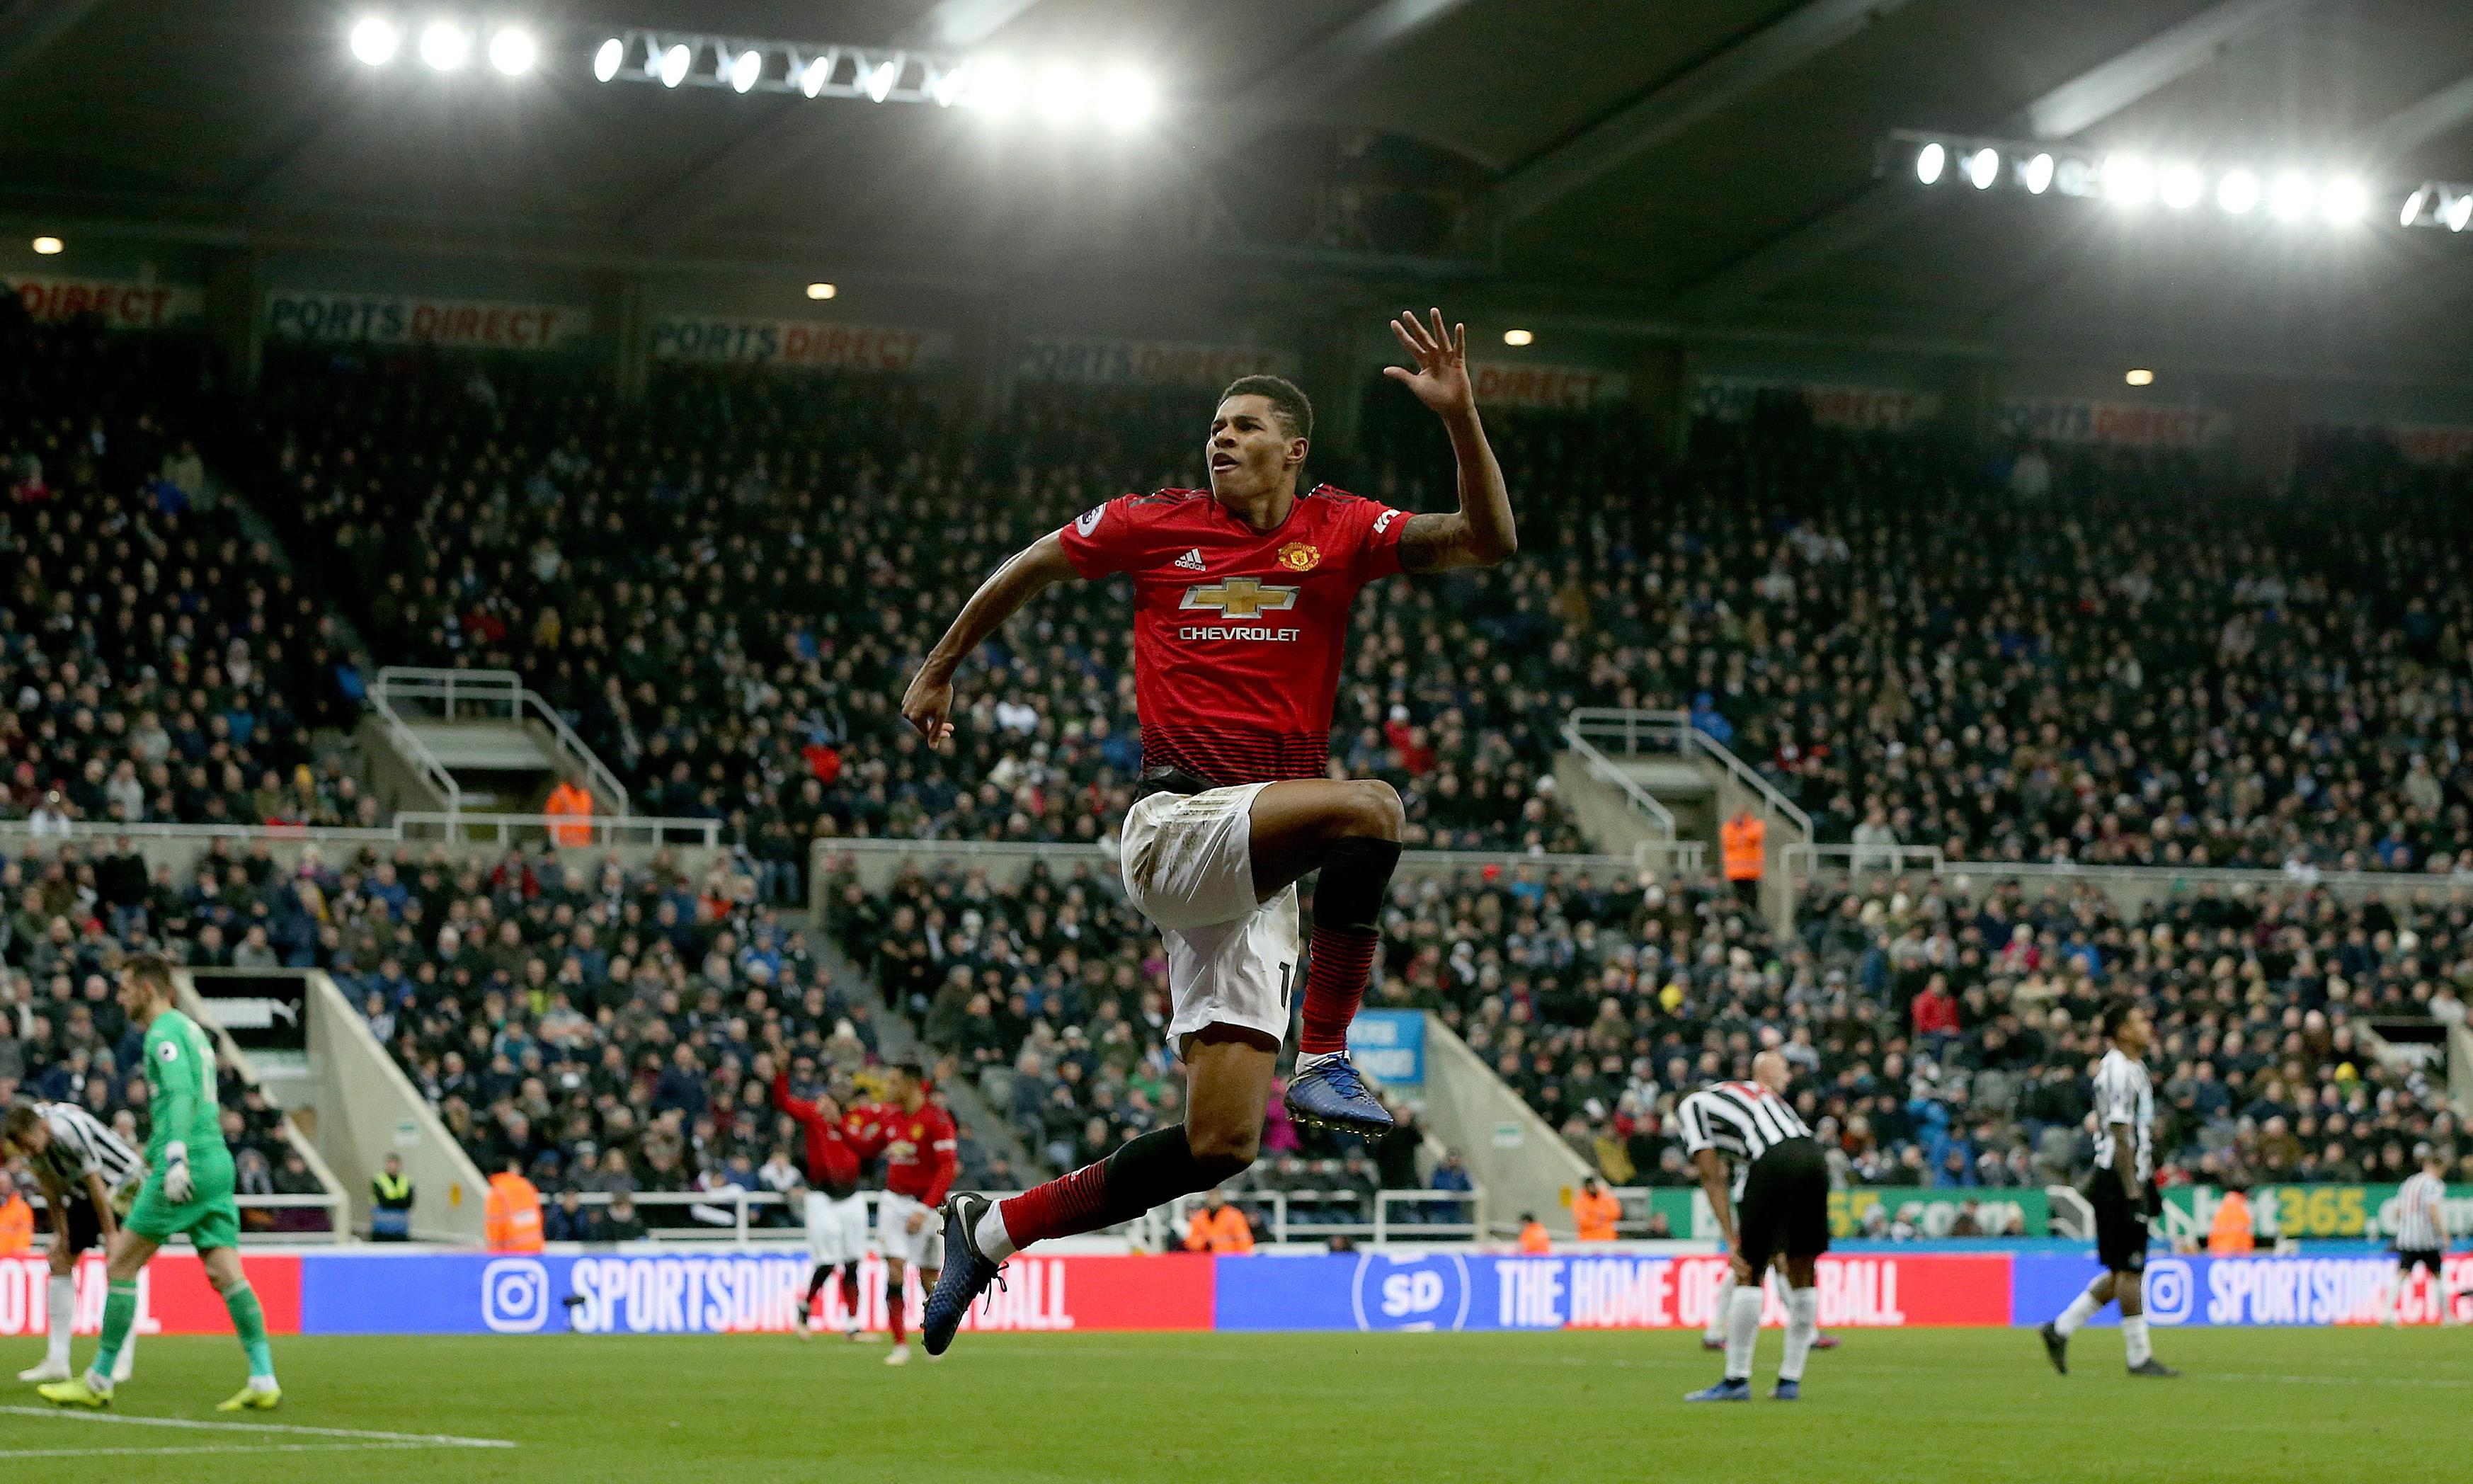 Manchester United's golden child Marcus Rashford finds his lost lustre